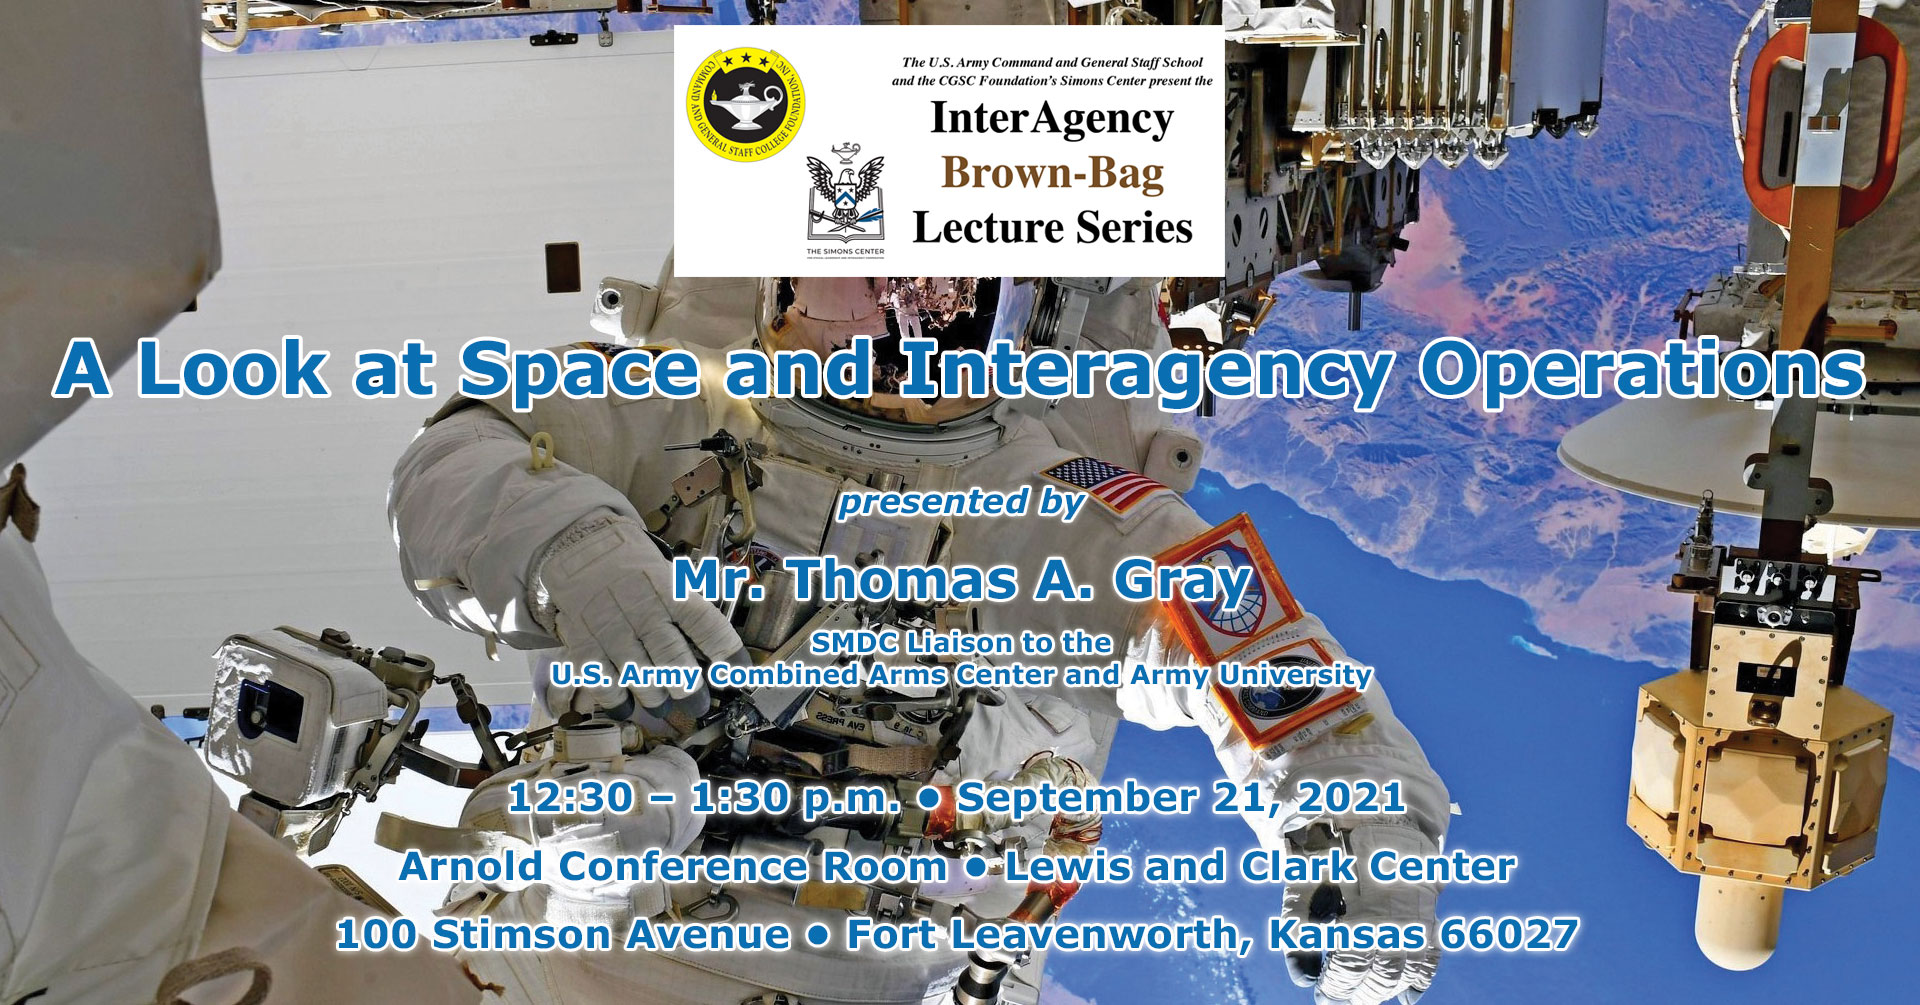 image of an astronaut space walking with Interagency Brownbag Lecture information text over the photo. The next brown-bag lecture is Sept. 21, 2021 at 12:30 p.m. in the Arnold Conference Room of the Lewis and Clark Center.